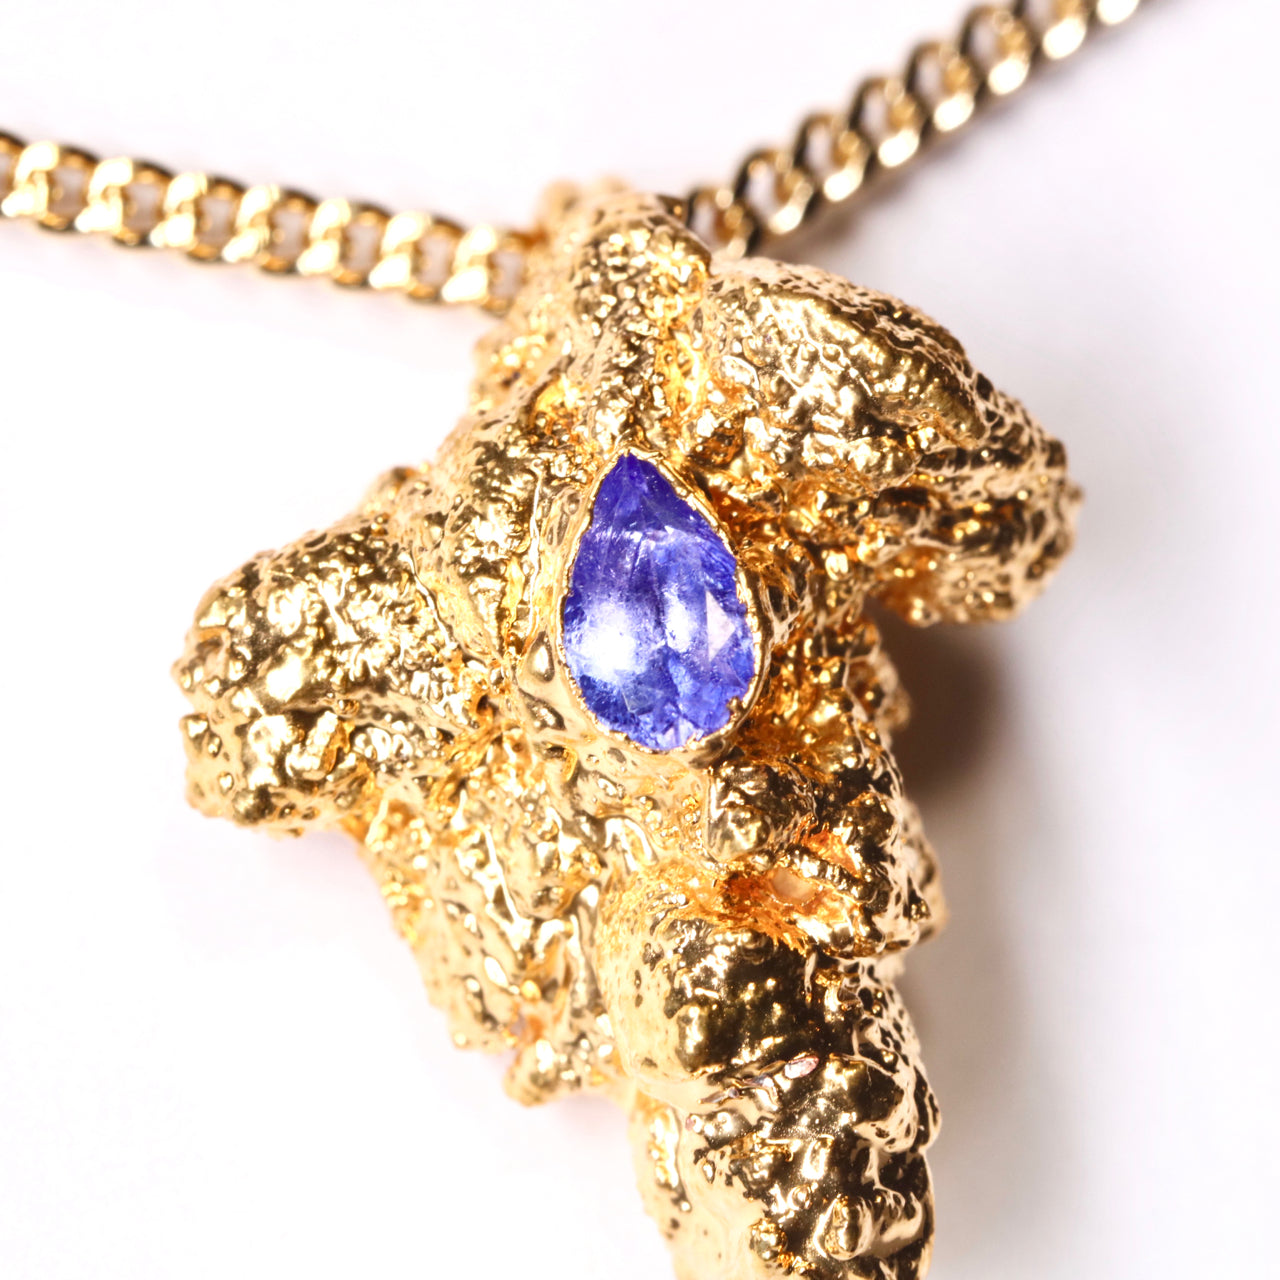 Gold Cannabis Nug with Tanzanite